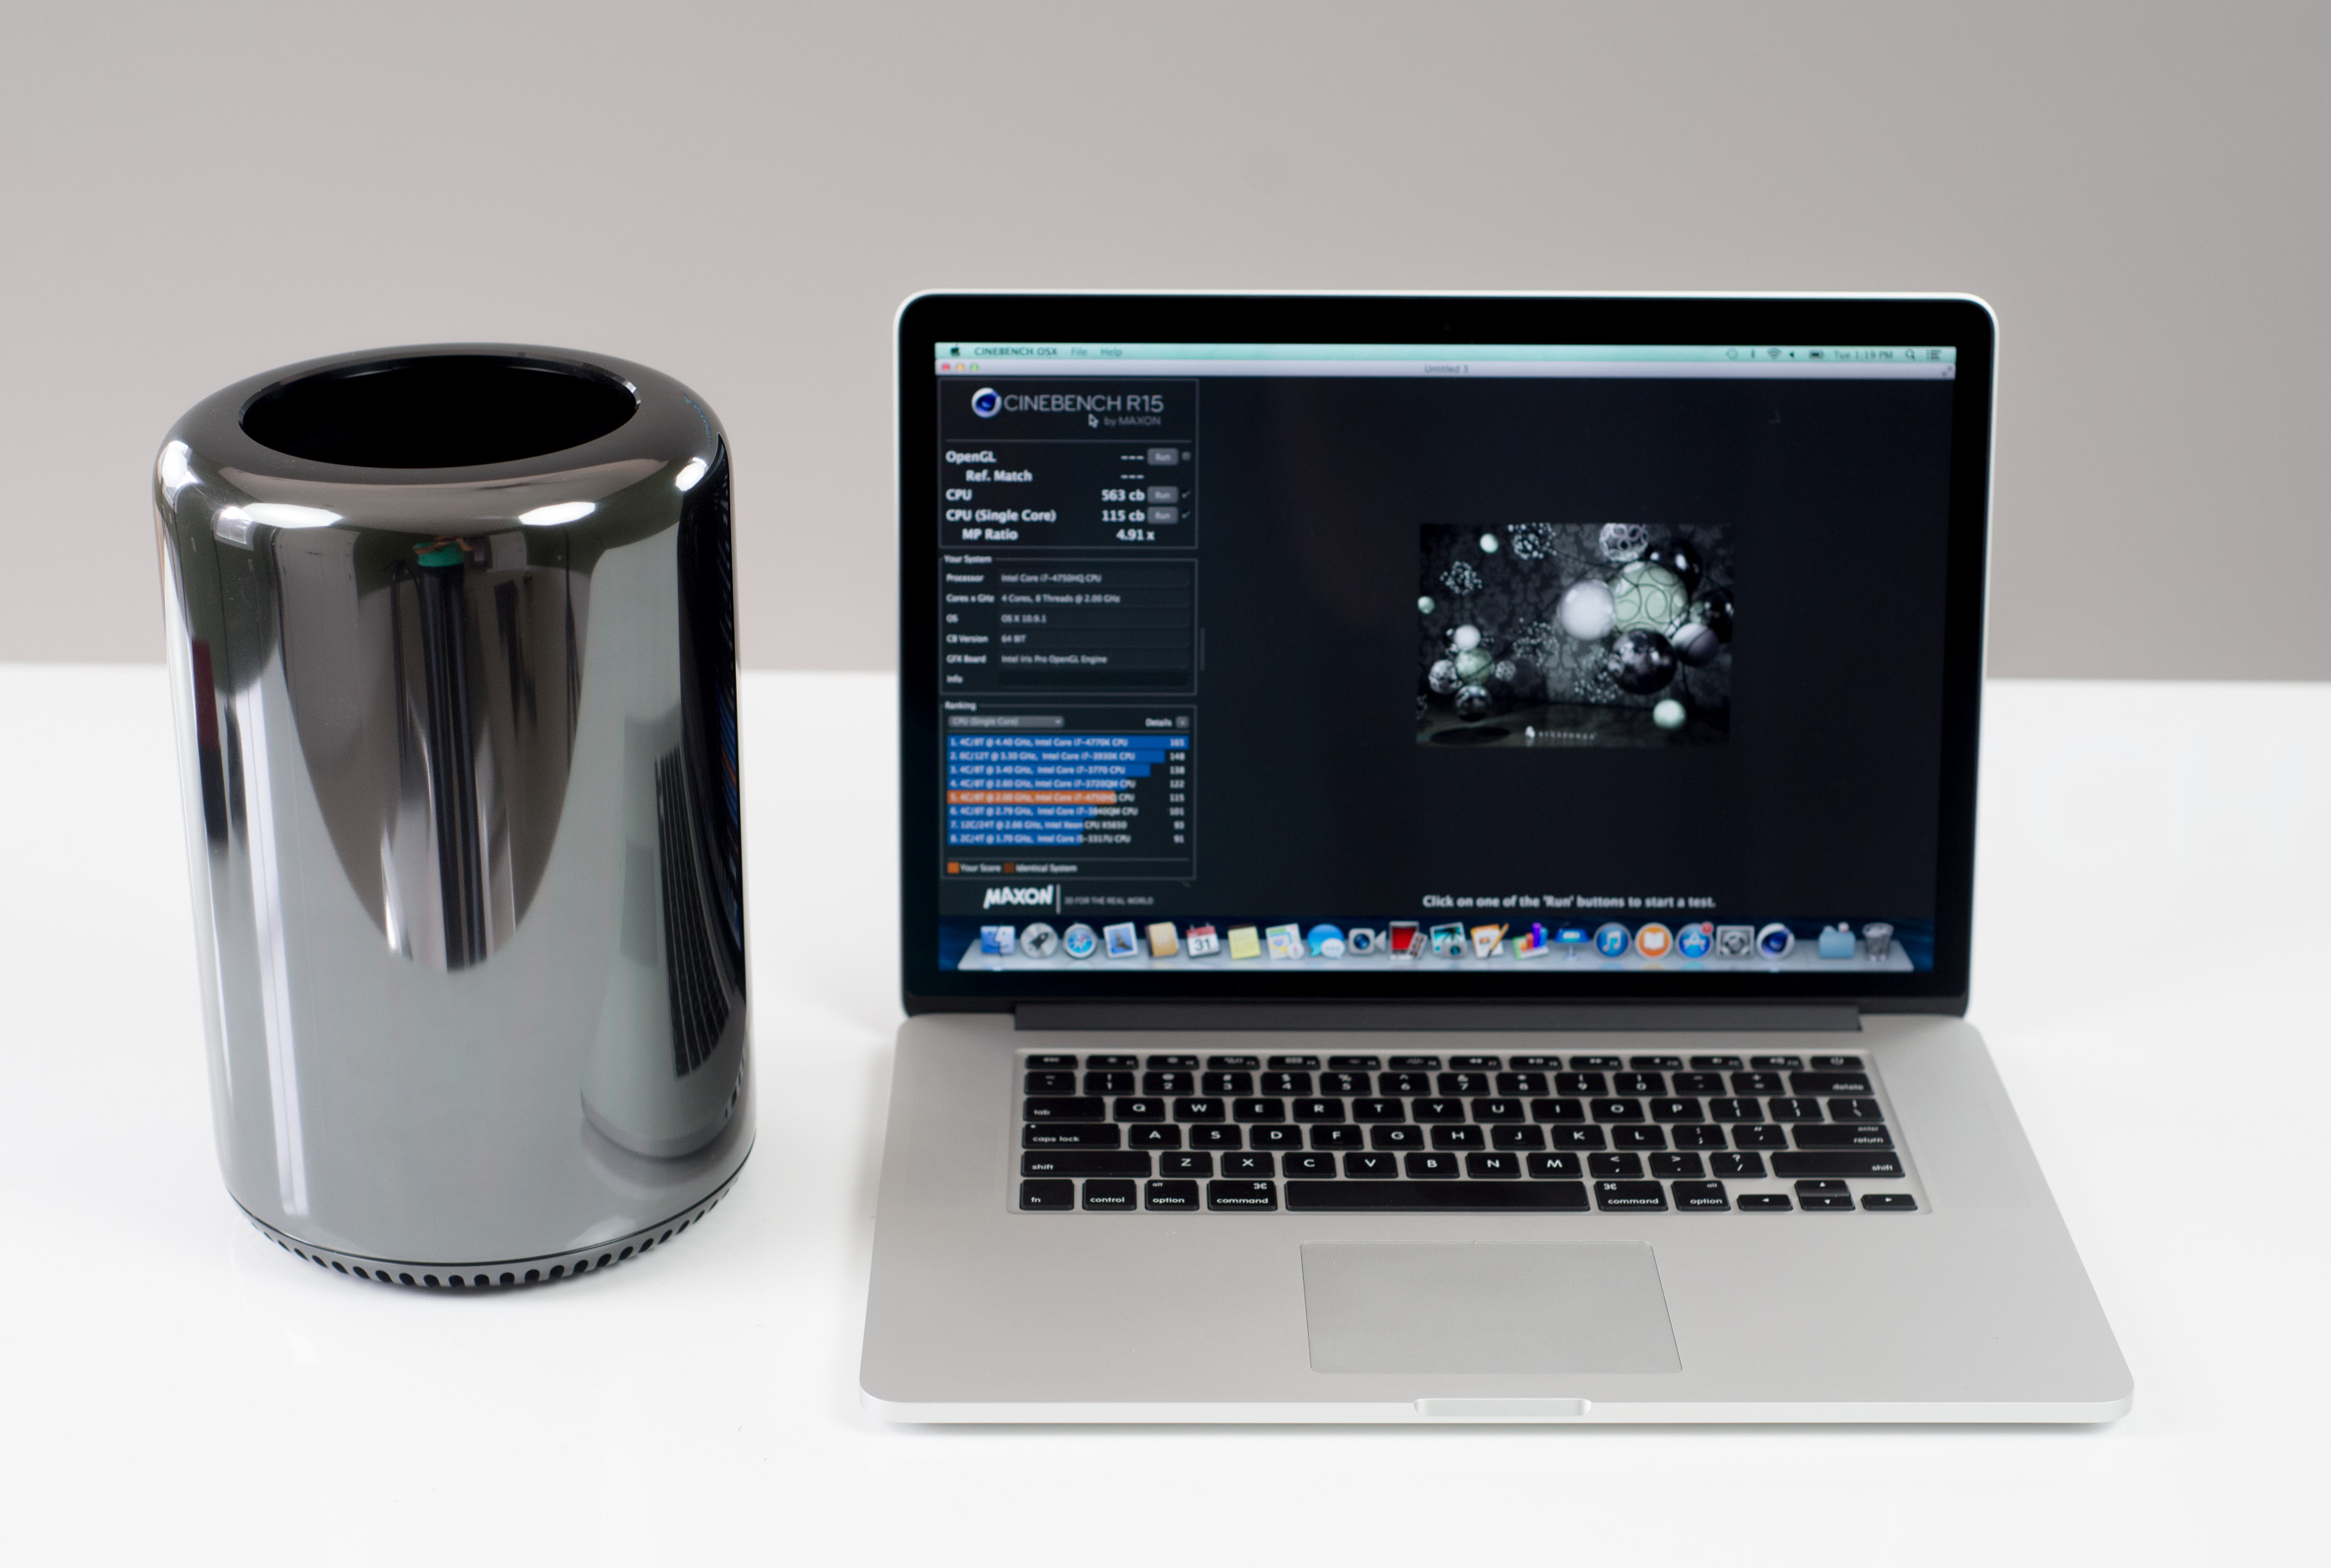 The Mac Pro Review Late 2013